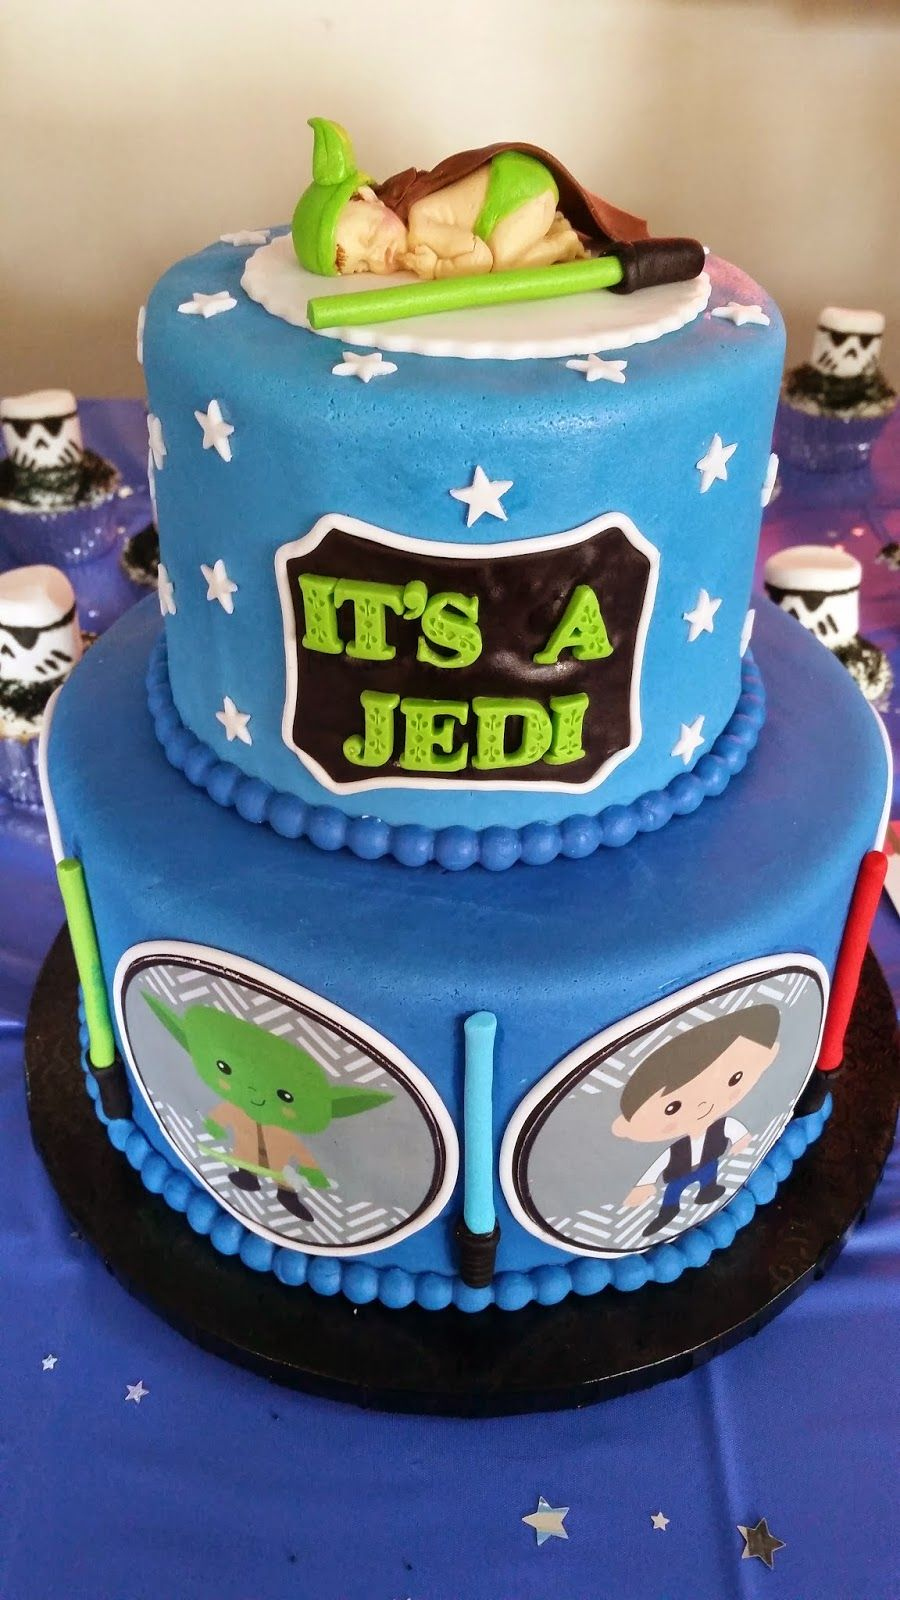 Delightful Star Wars Themed Cake For A Baby Shower! I Like The Baby Boy On Top